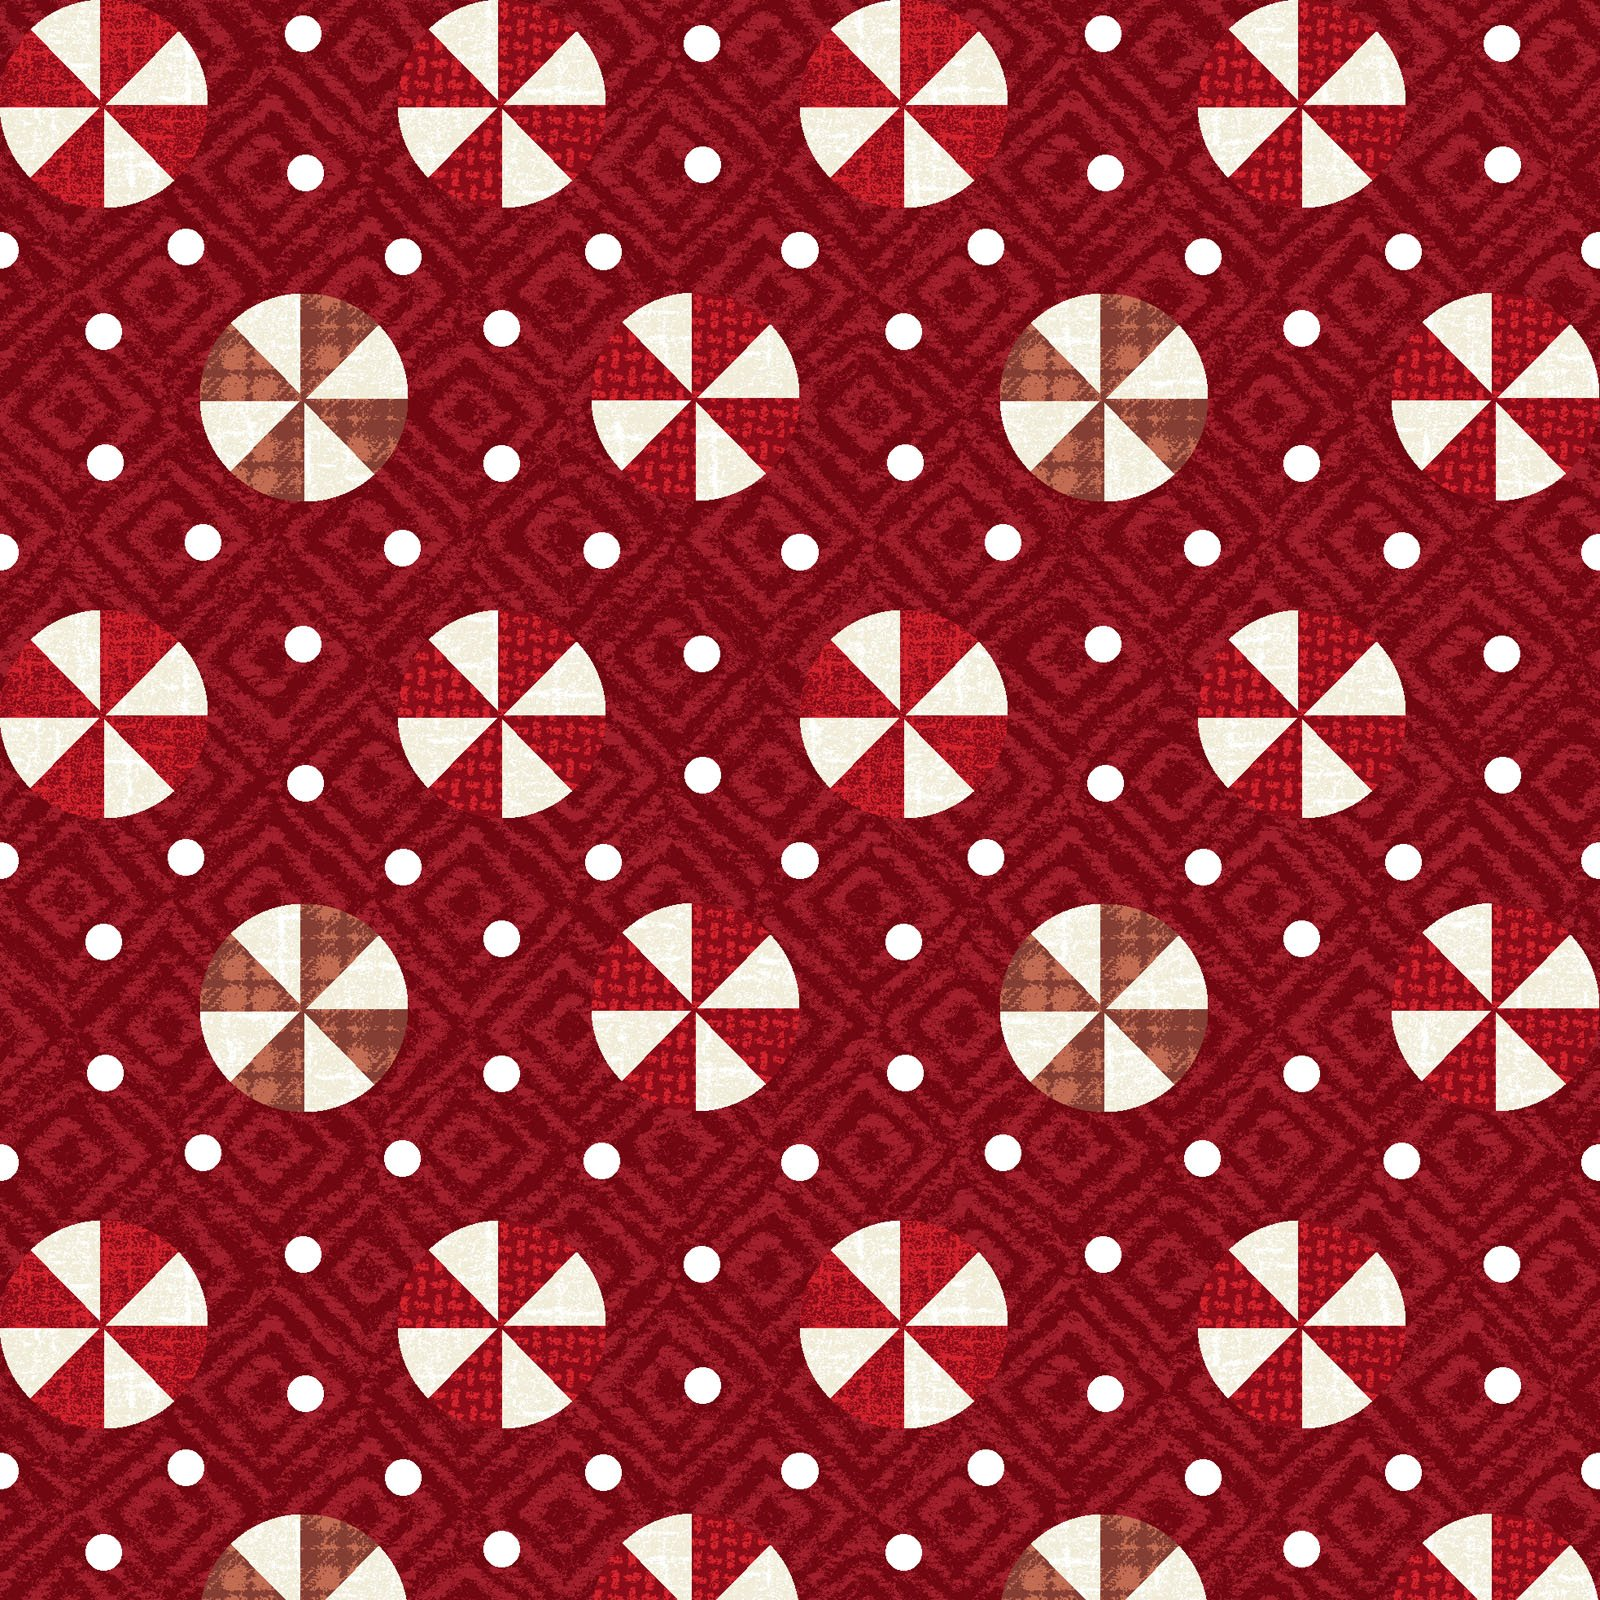 EESC-F9936 R - SNOWDAYS FLANNEL BY BONNIE SULLIVAN PEPPERMINT RED - ARRIVING IN AUGUST 2021